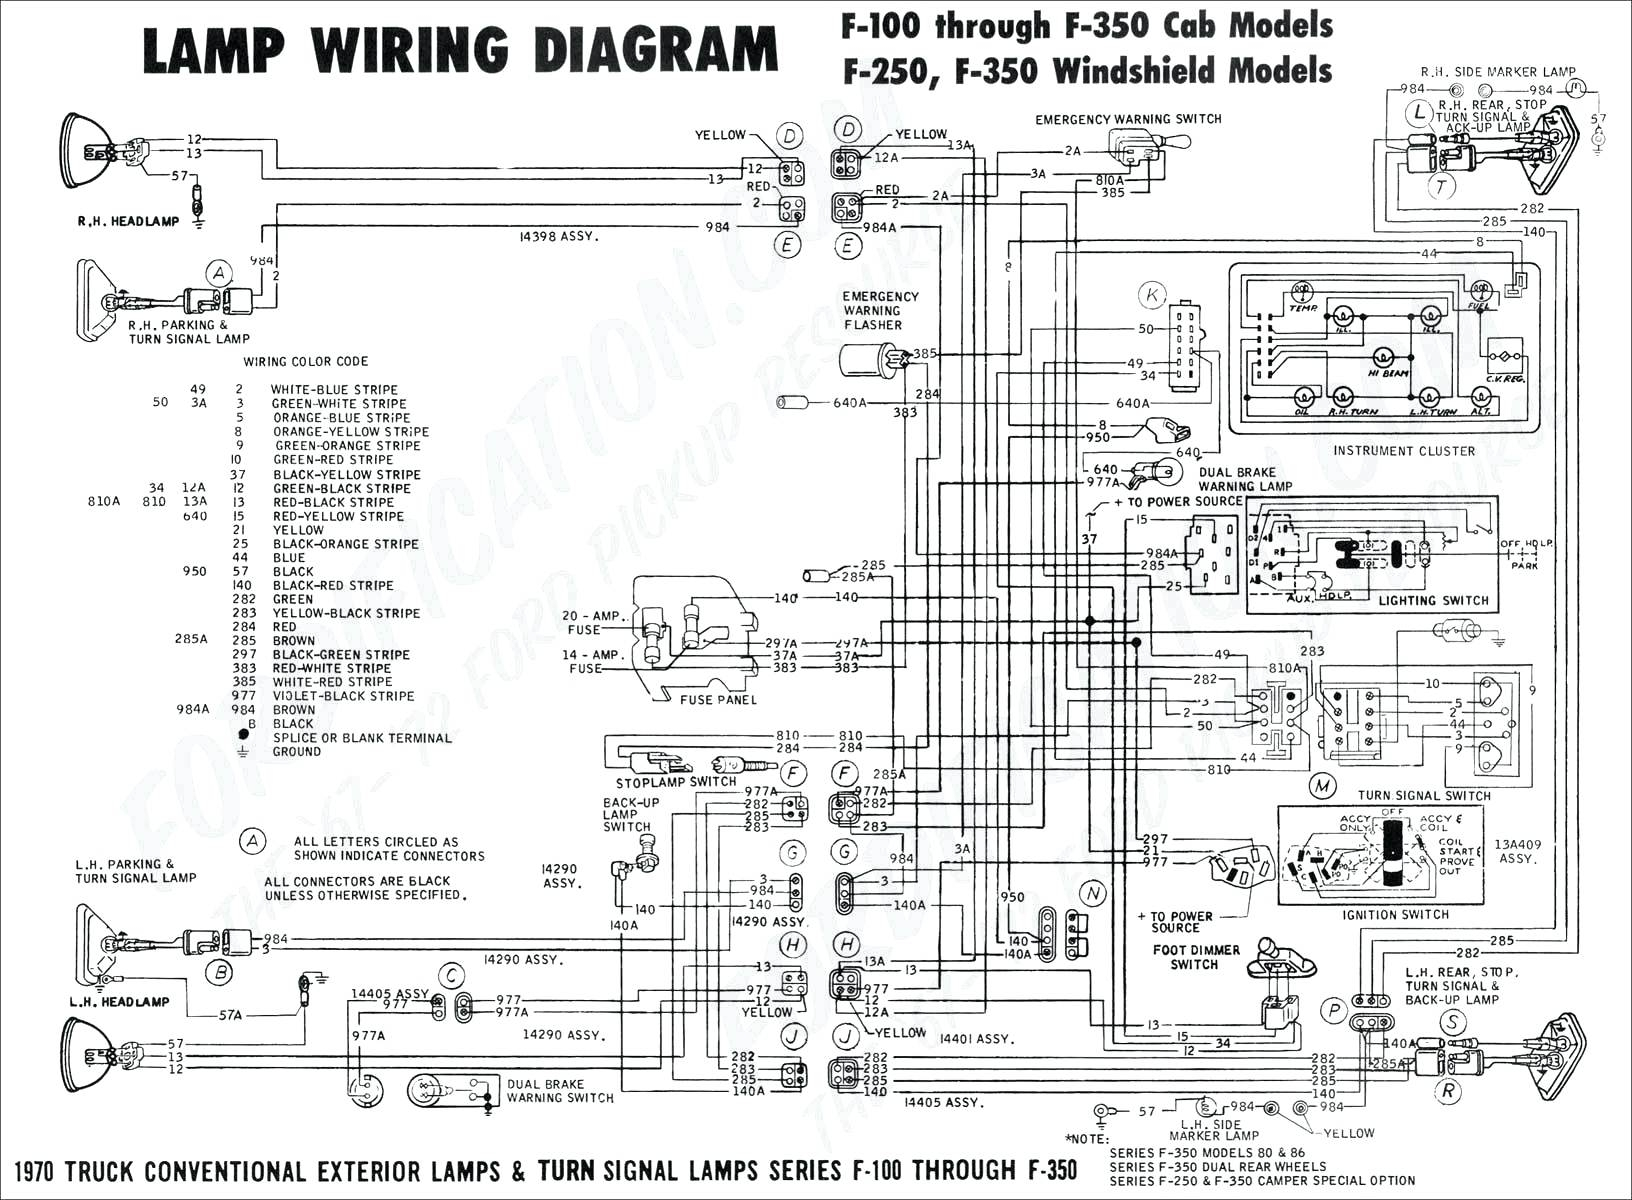 starter solenoid wiring diagram with attached solenoid ford f250 starter solenoid wiring diagram | free wiring ...